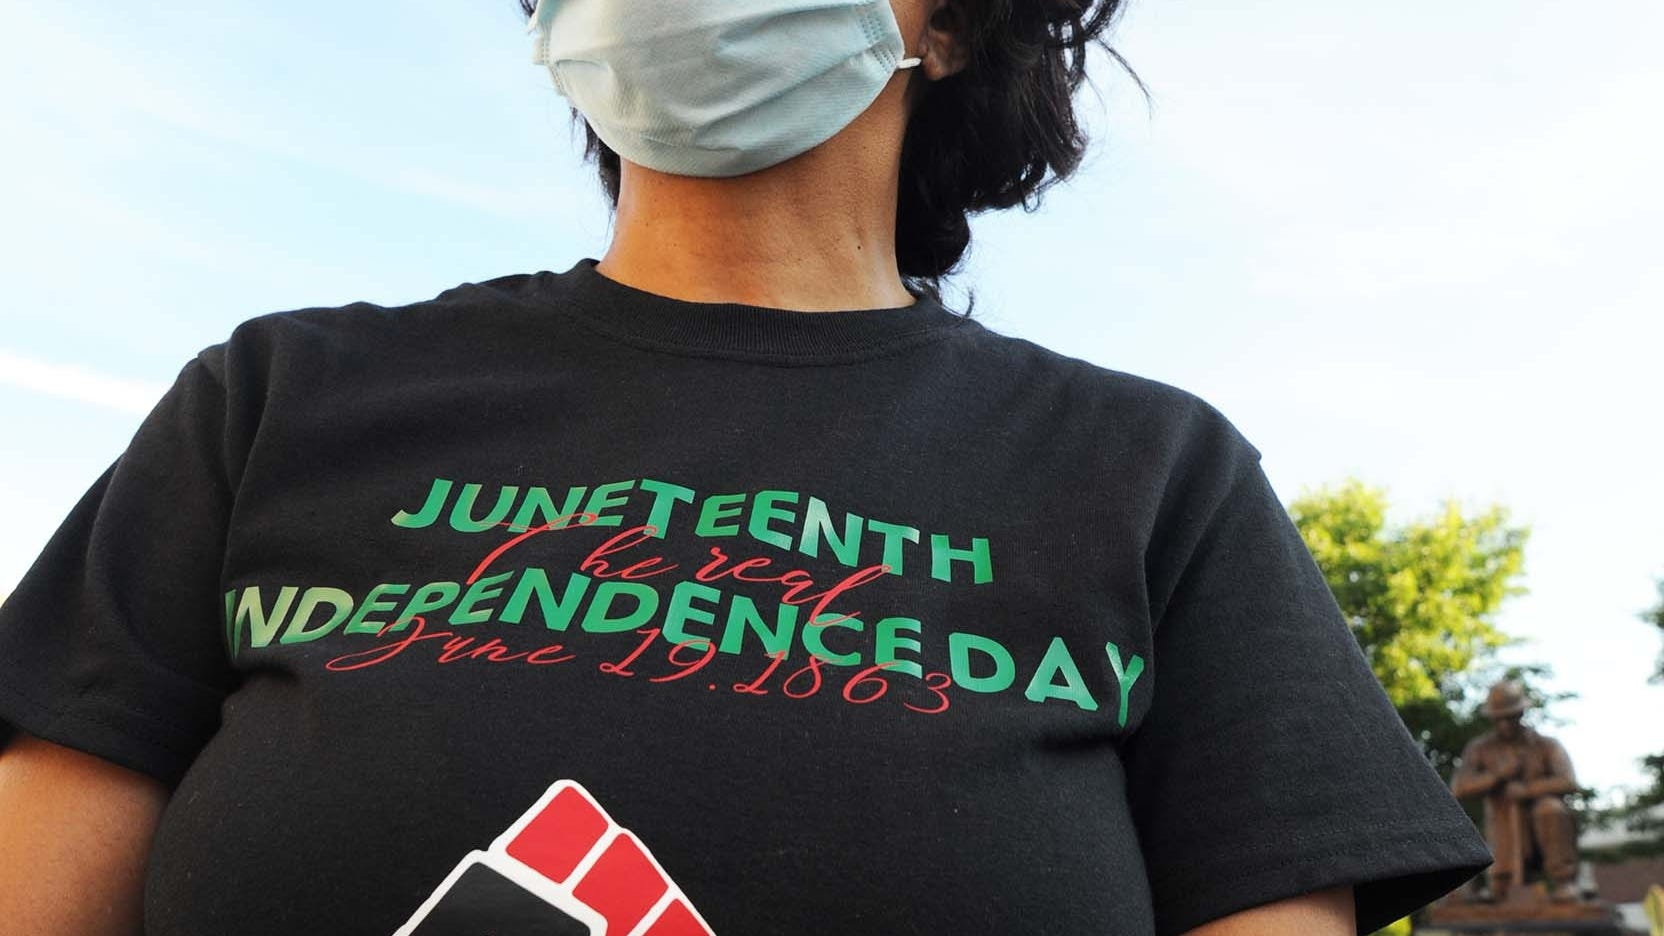 Oregon Lawmakers Unanimously Vote to Recognize Juneteenth as an Official Holiday